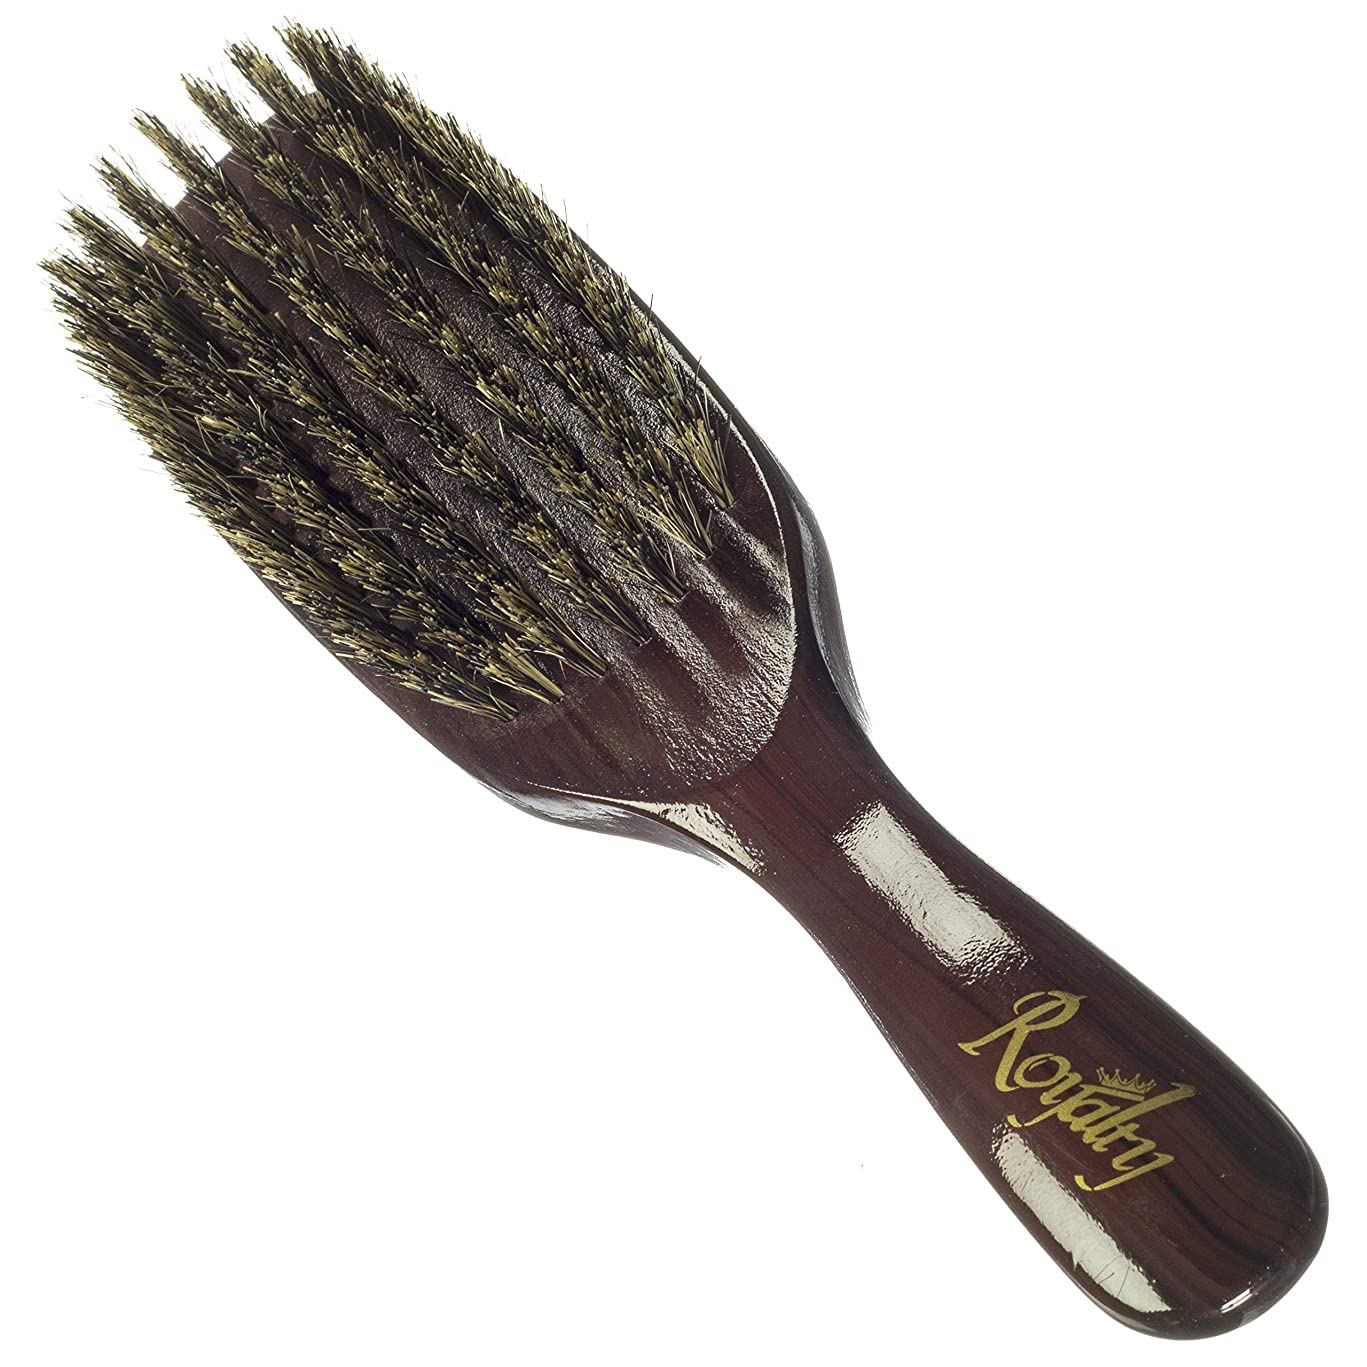 Royalty By Brush King Wave Brush #724-7 Row Medium with a lot of pull- Not for fresh cuts- From the maker of Torino Pro 360 waves brushes